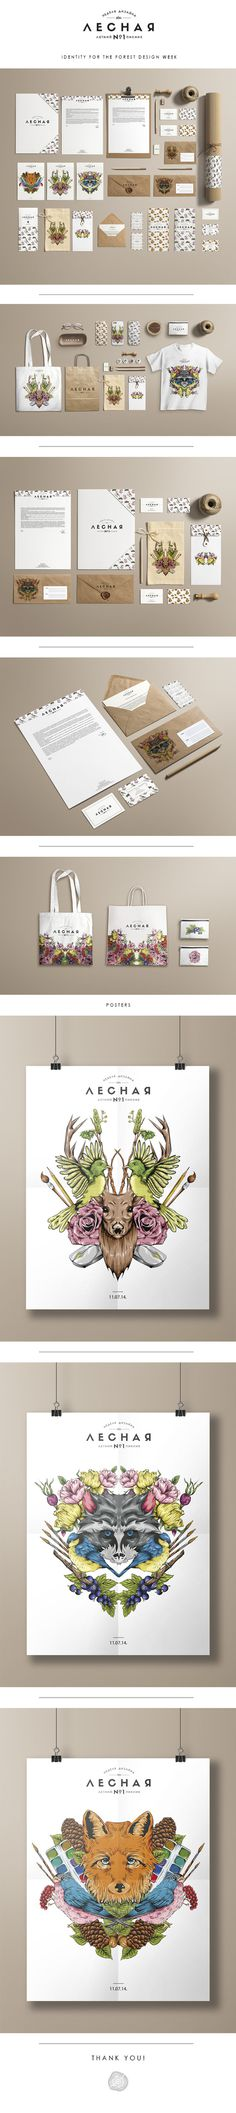 Forest Design Week on Behance